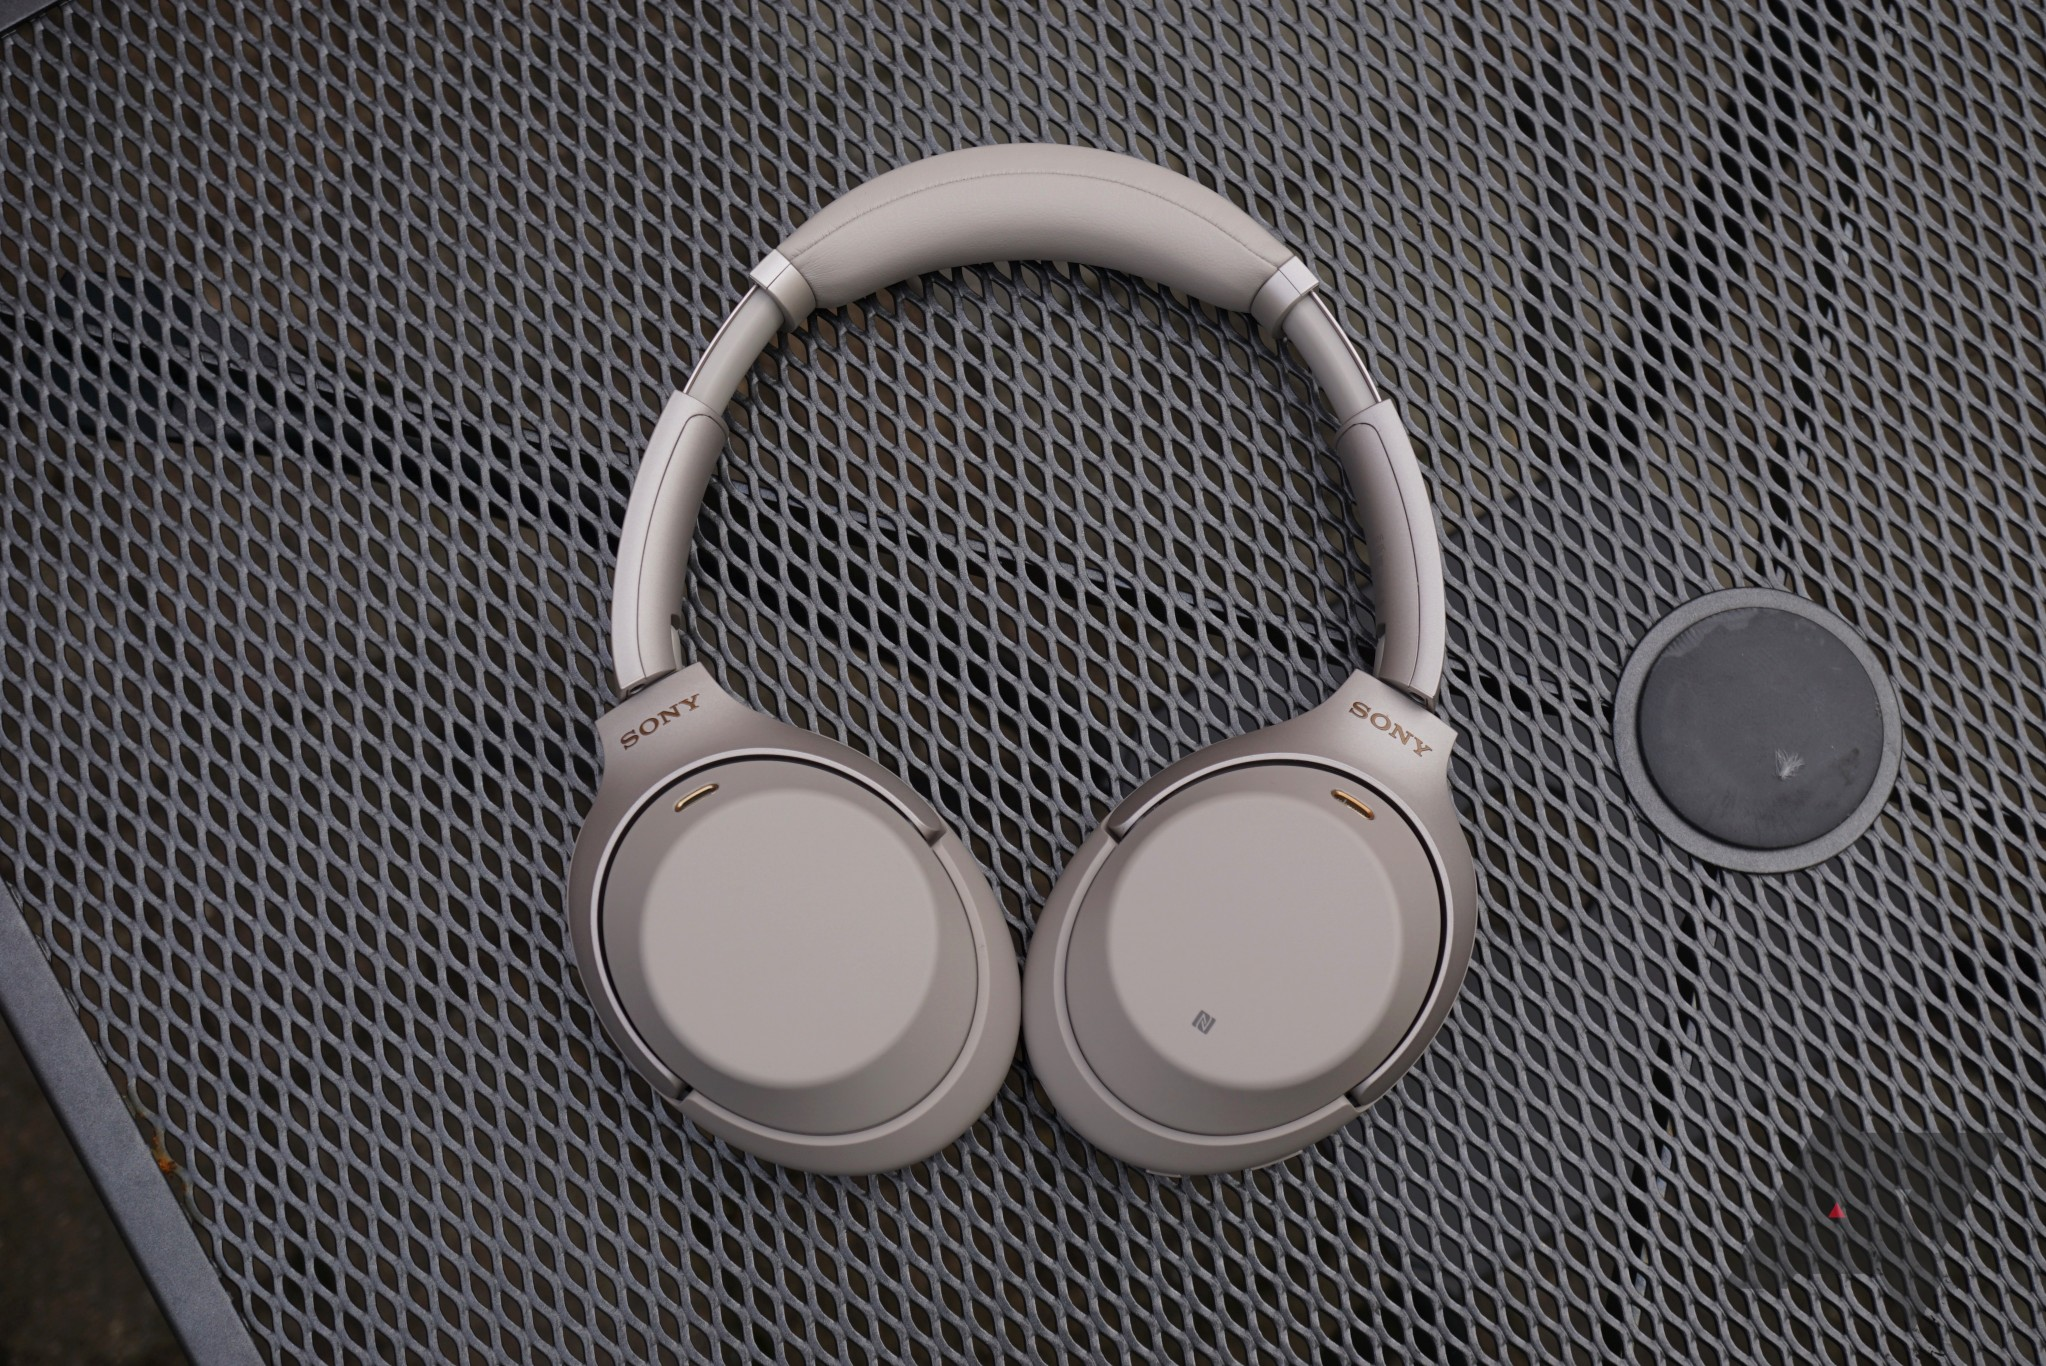 Sony's excellent WH-1000XM3 ANC Bluetooth headphones are